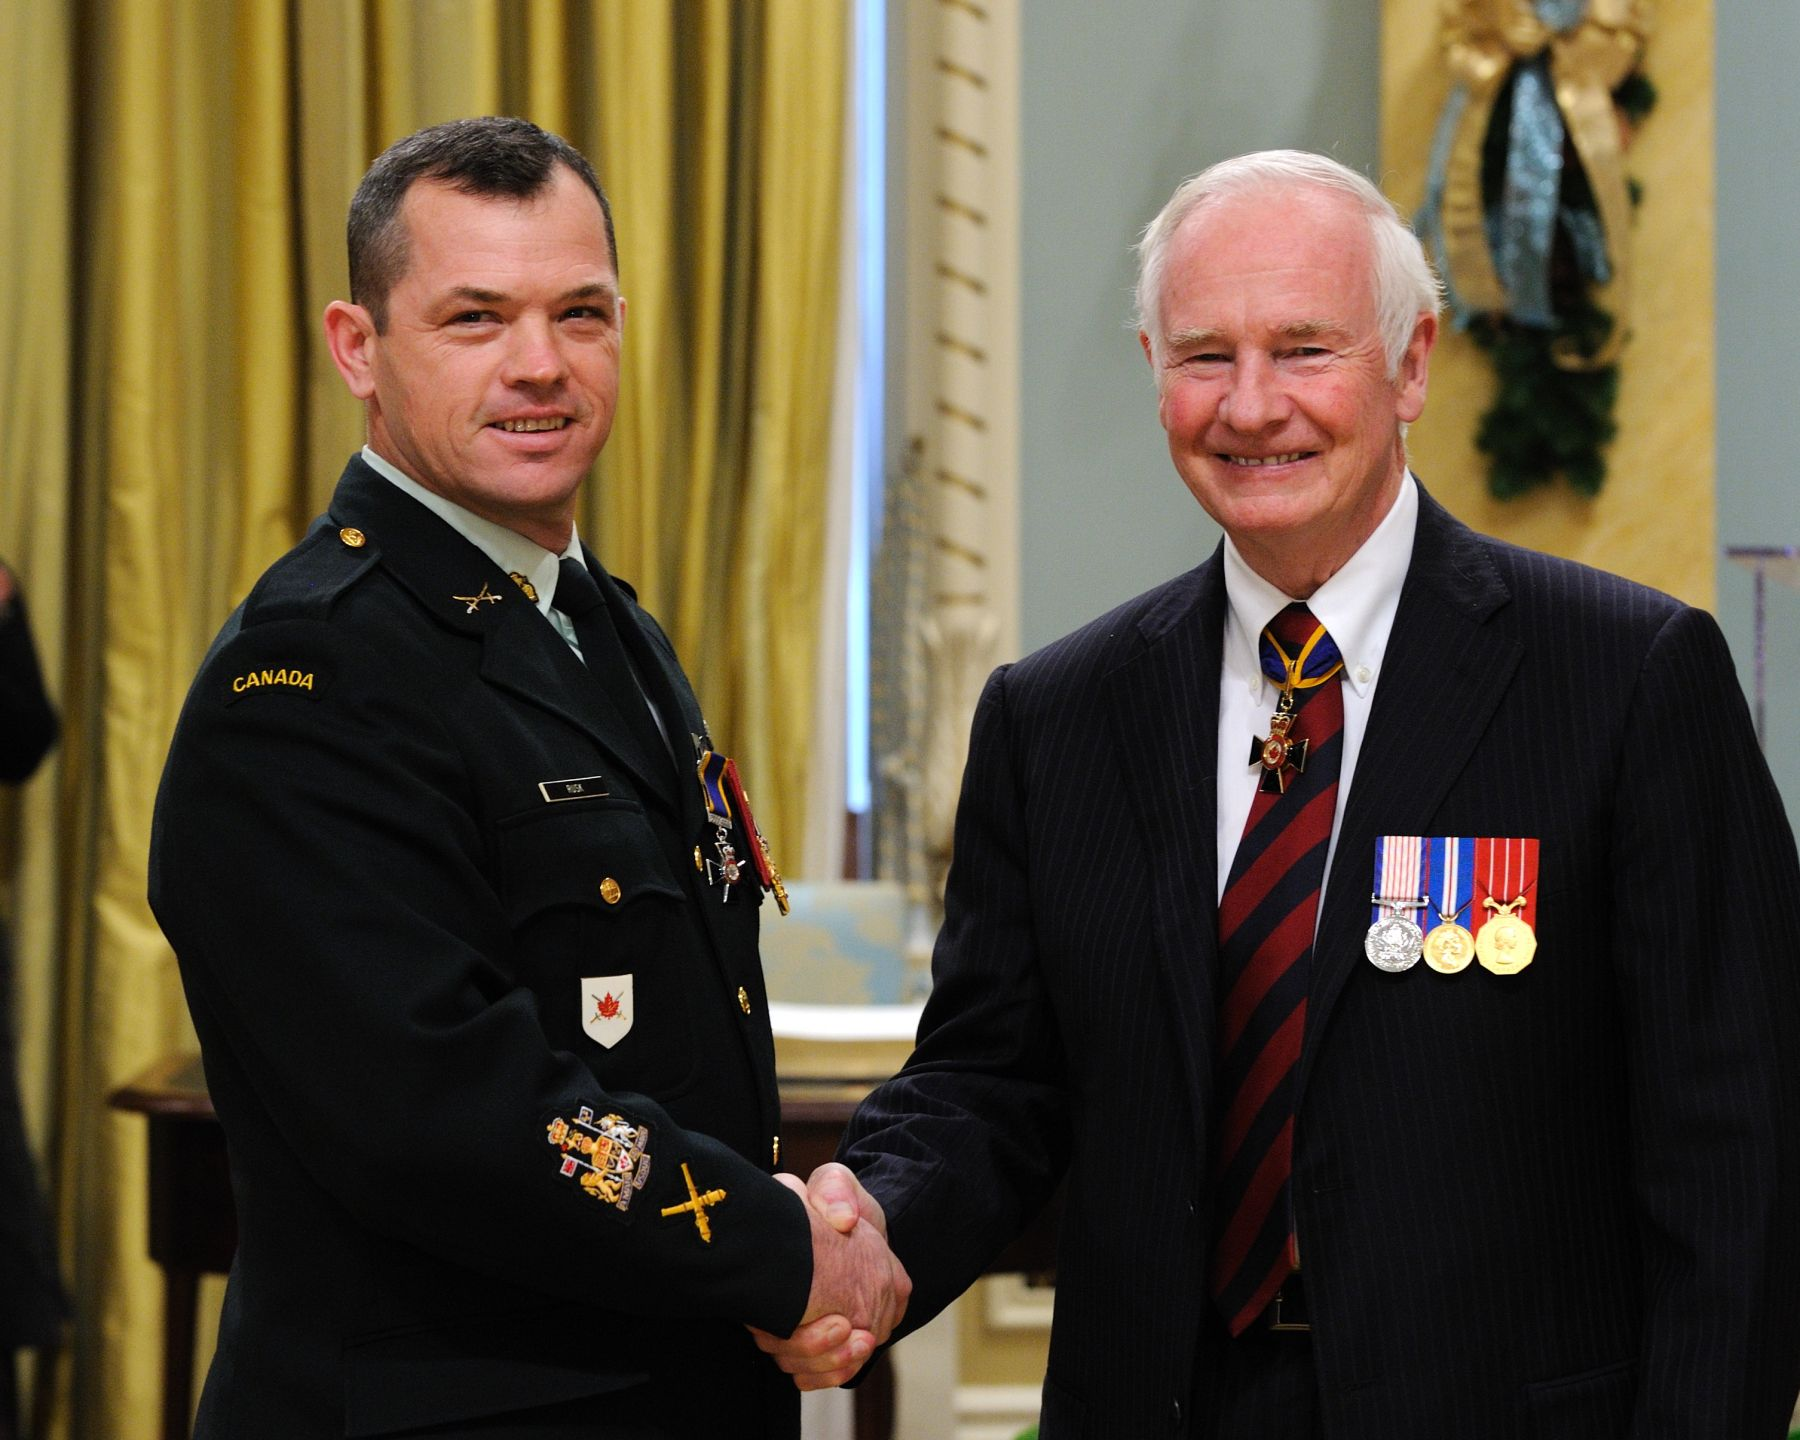 His Excellency presented the Order of Military Merit at the Member level (M.M.M.) to Chief Warrant Officer Christopher Rusk, M.M.M., C.D., 2nd Regiment Royal Canadian Horse Artillery, Petawawa, Ontario.